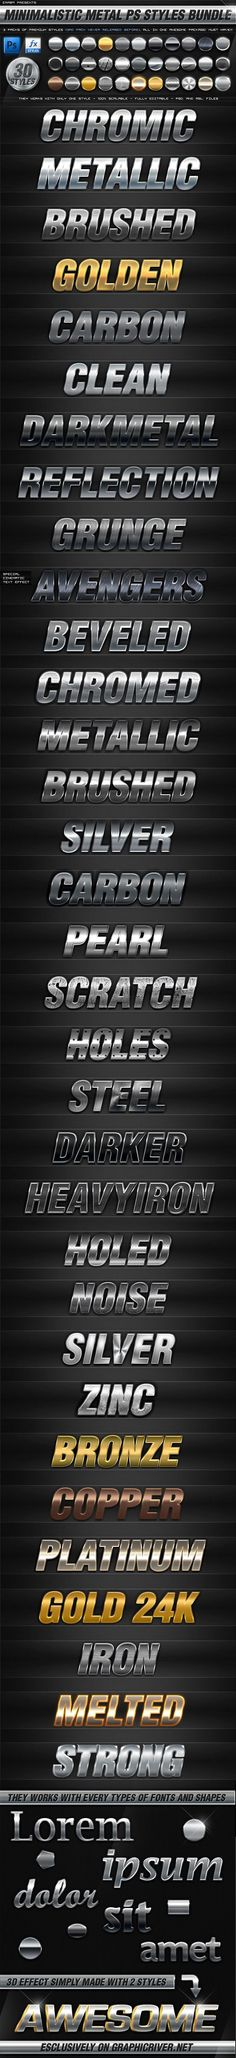 - 30 Minimalistic Metal PS Styles - GraphicRiver Item for Sale Photoshop Text Effects, Photoshop Tutorial, Photoshop Actions, Web Design, Graphic Design, Calligraphy Text, How To Clean Metal, Grunge, Layer Style